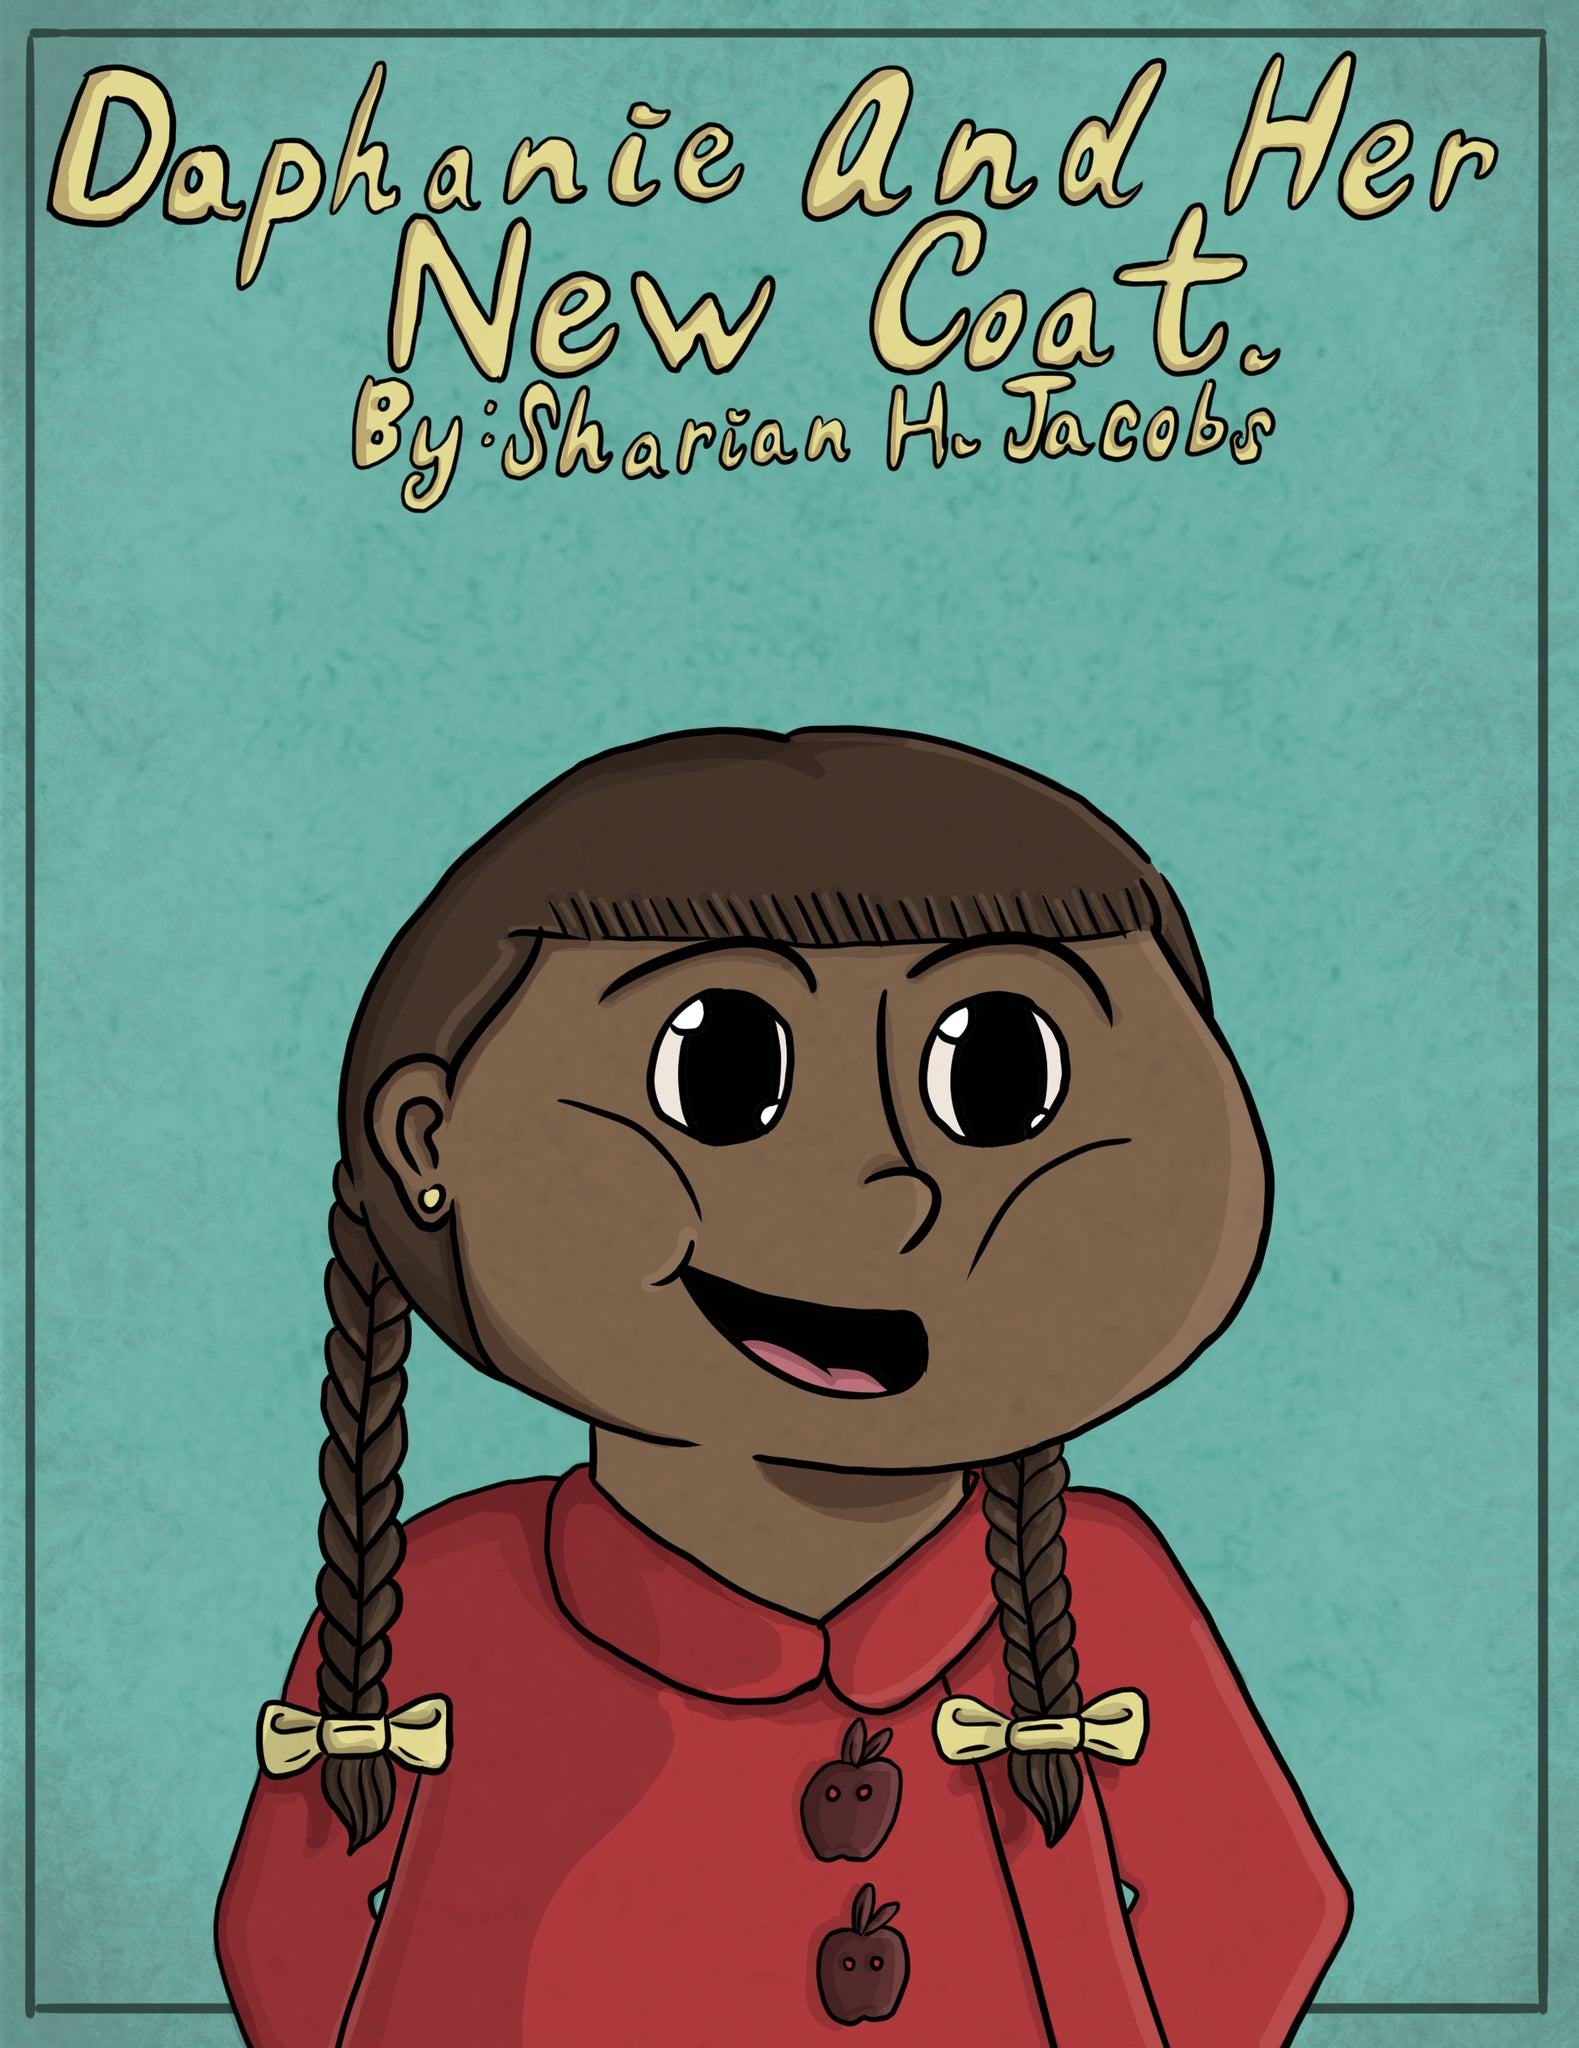 Daphanie And Her New Coat (Hardcover Children's Book)